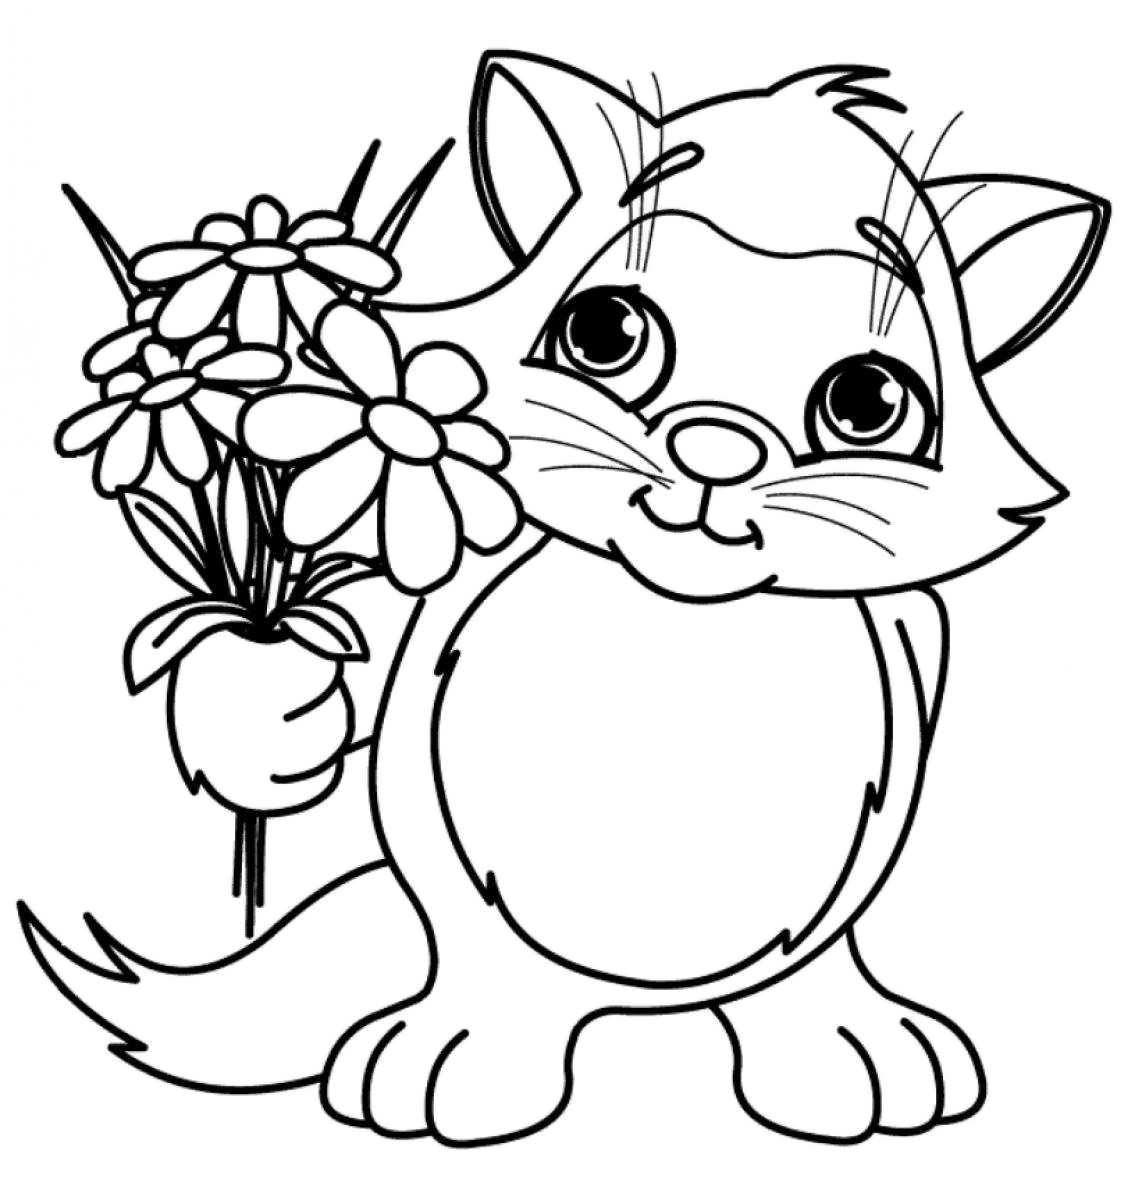 1135x1200 Nature Sunflower Coloring Page Floral Color Flower Design